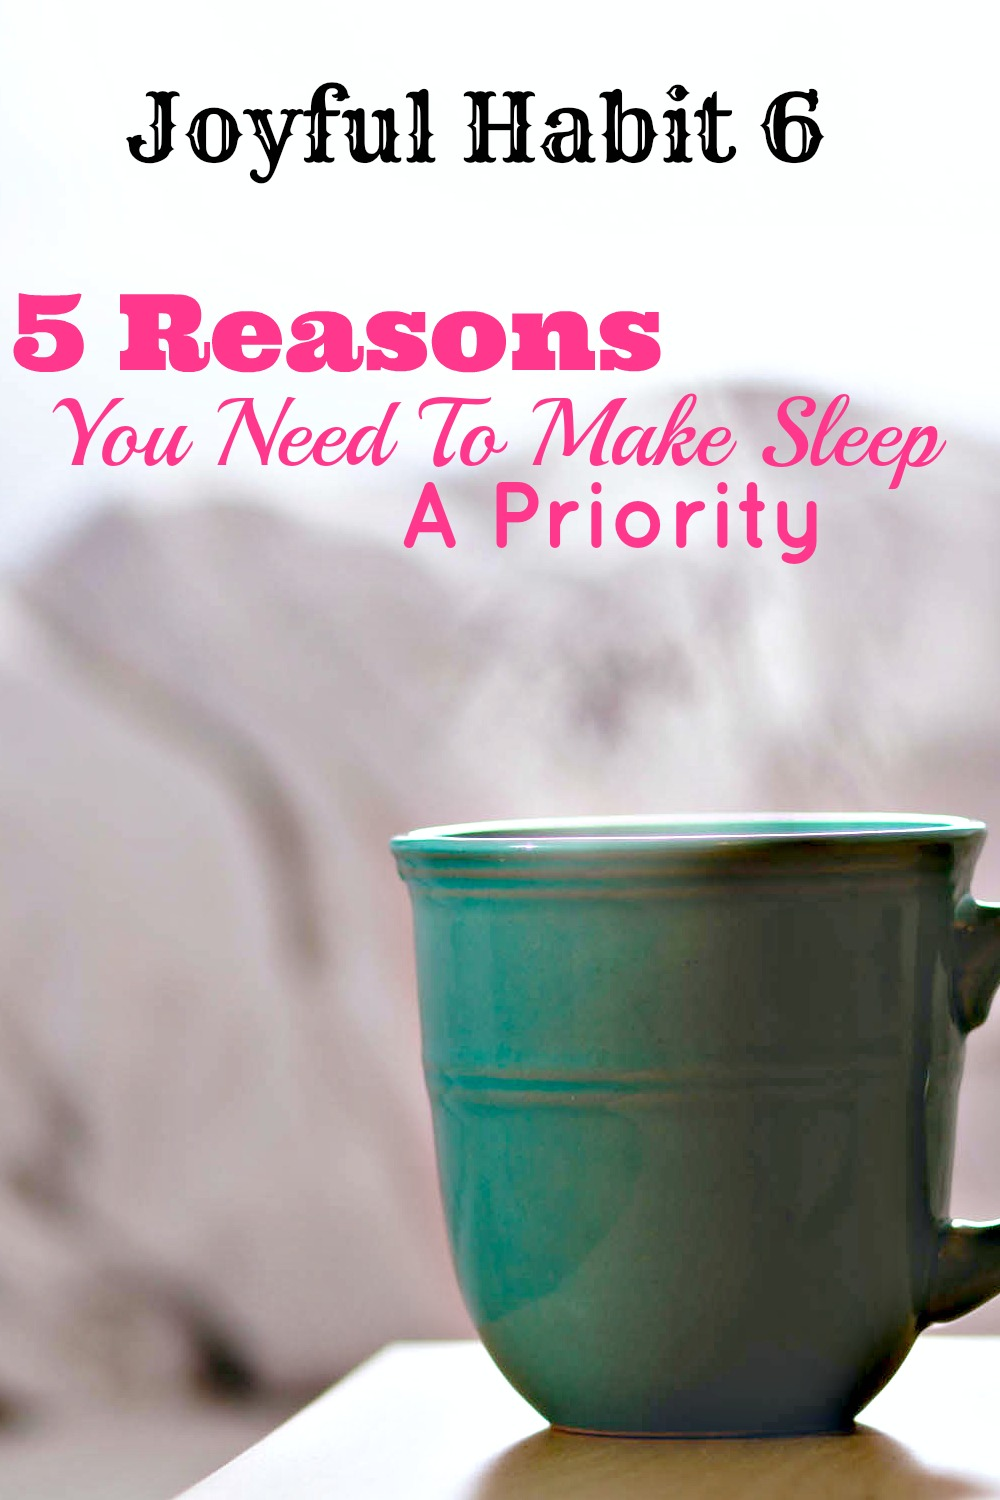 5 Reasons You Need To Make Sleep A Priority